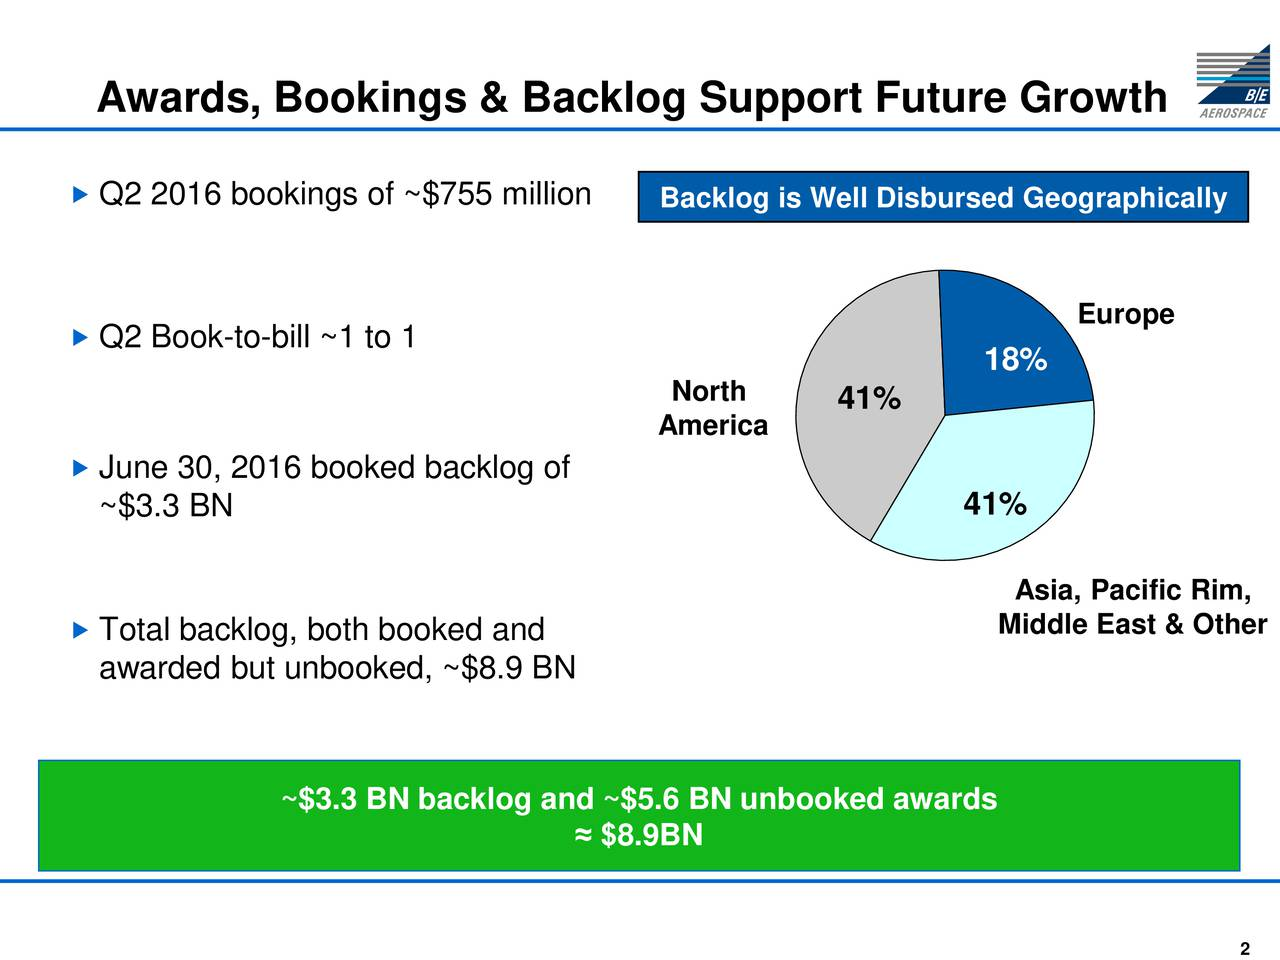 Q2 2016 bookings of ~$755 millionBacklog is Well Disbursed Geographically Europe Q2 Book-to-bill ~1 to 1 18% North America 41% June 30, 2016 booked backlog of ~$3.3 BN 41% Asia, Pacific Rim, Total backlog, both booked and Middle East & Other awarded but unbooked, ~$8.9 BN ~$3.3 BN backlog and ~$5.6 BN unbooked awards $8.9BN